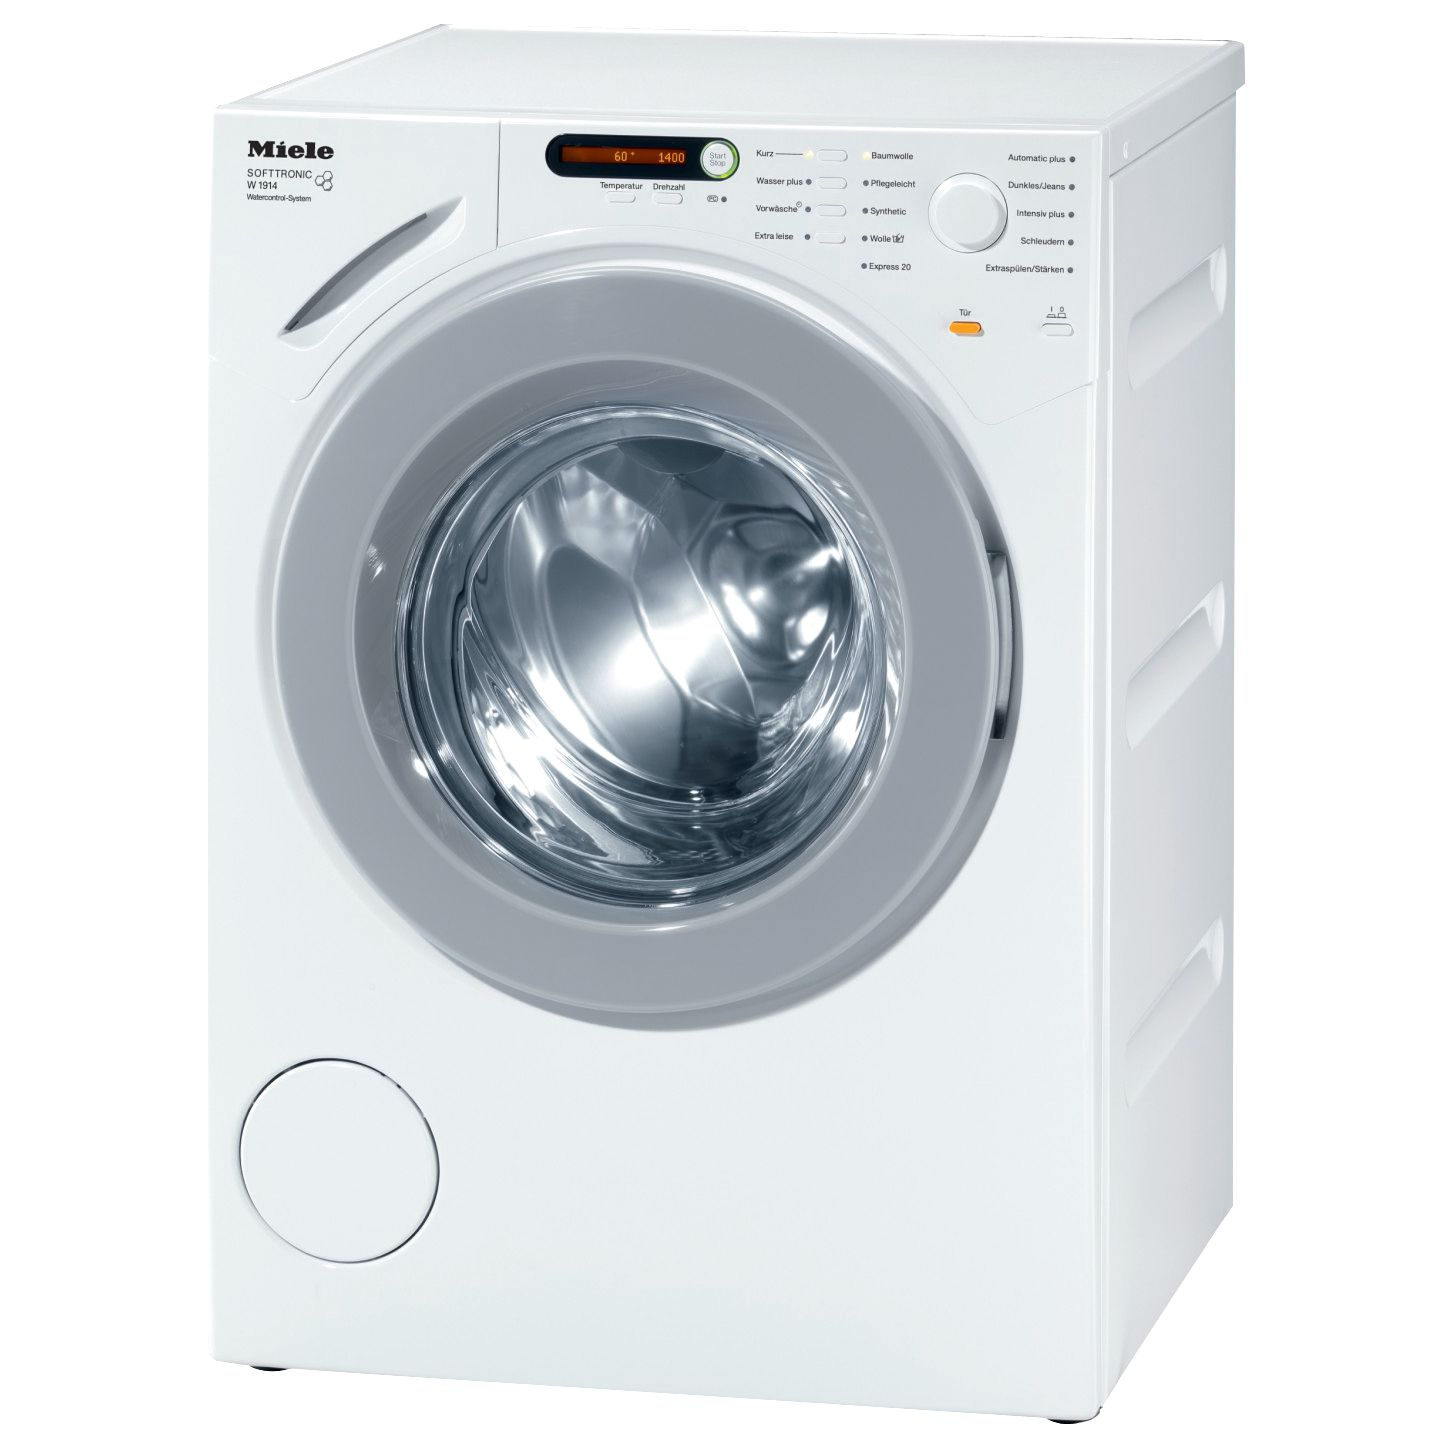 Miele W1914 Washing Machine, 7kg Load, A+ Energy Rating, 1400rpm Spin, White